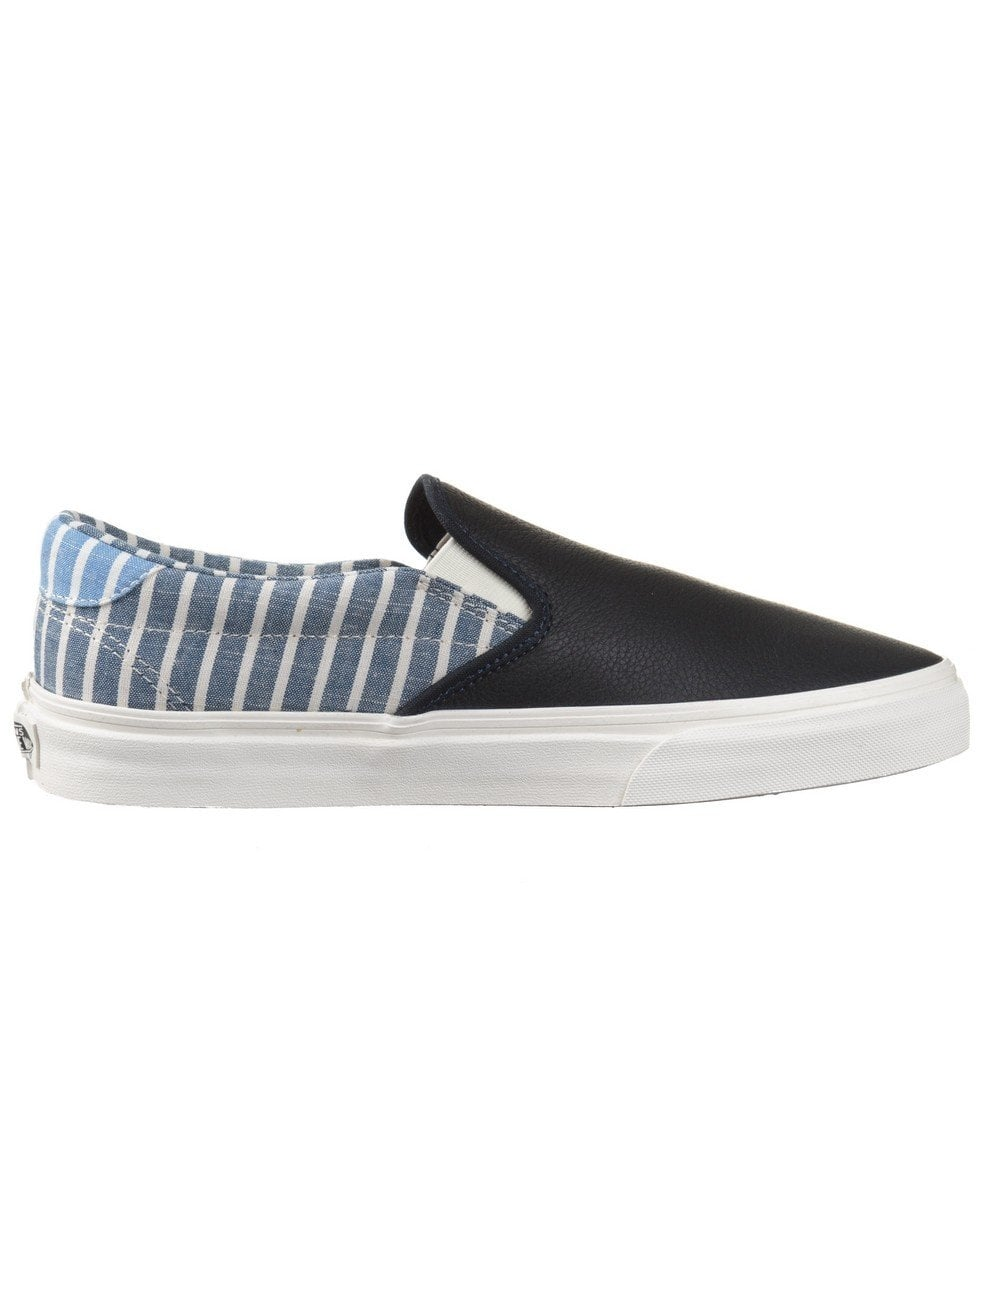 finest selection d1df6 7b9ed Slip-On 59 CA Shoes - Dress Blue Stripe